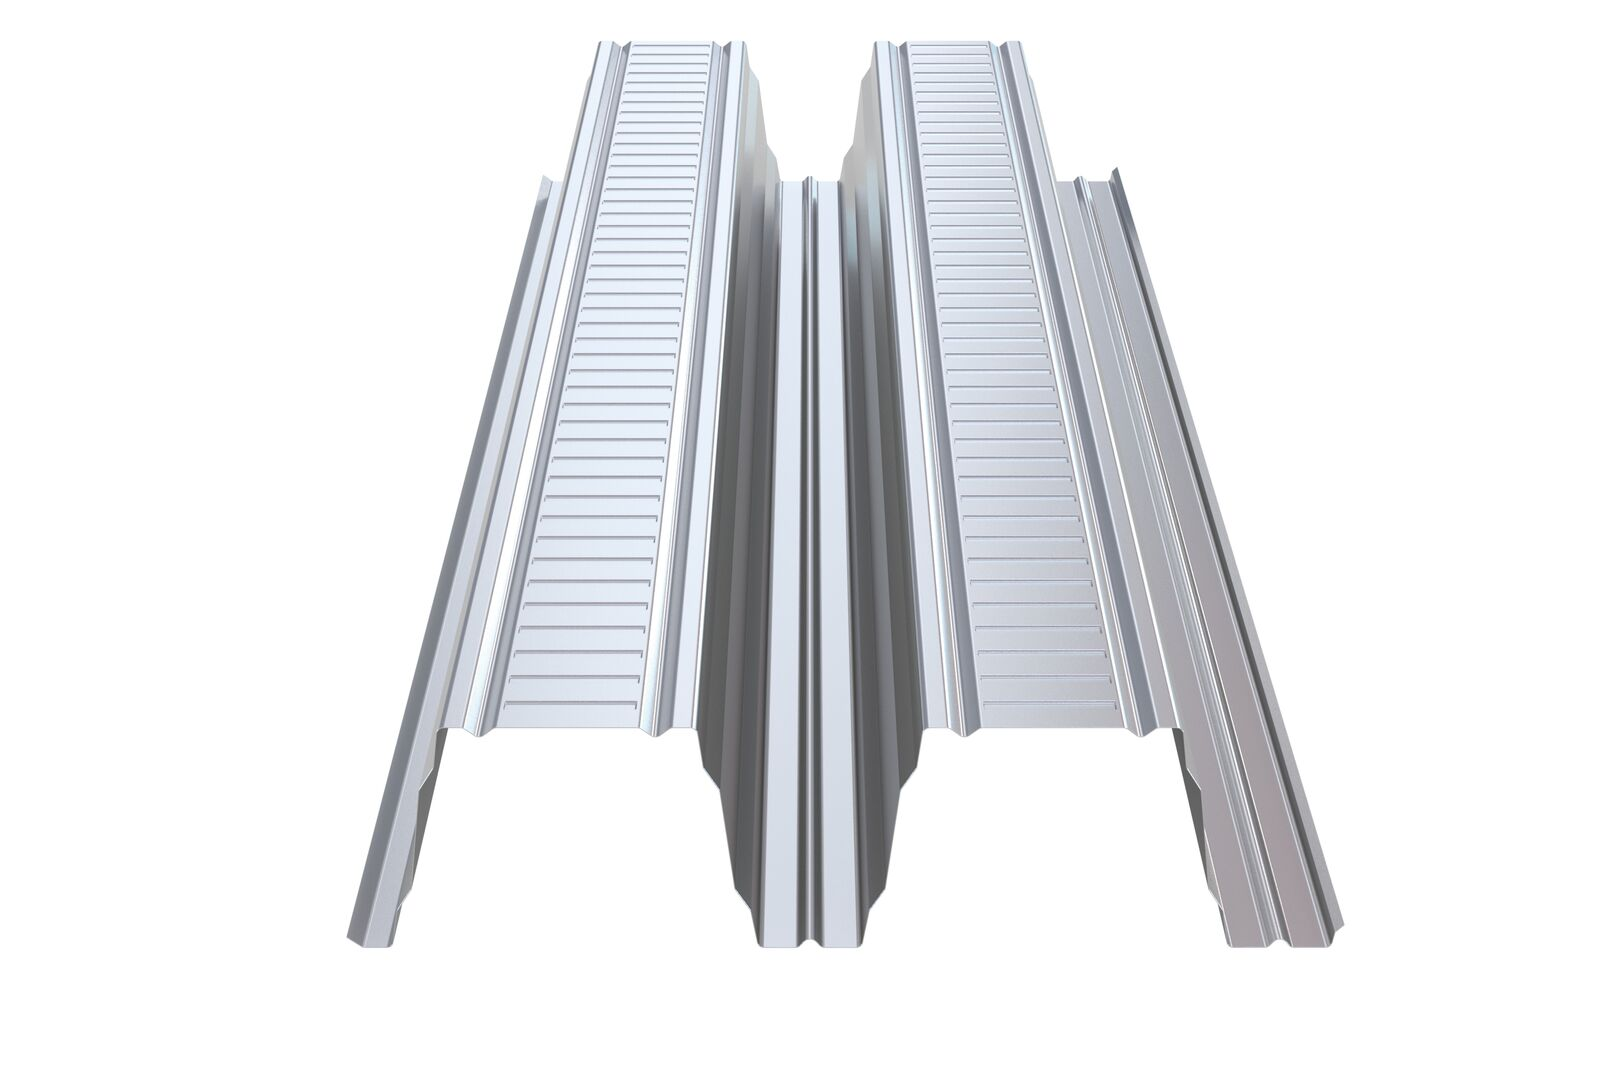 RoofDek Tata Steel construction decking